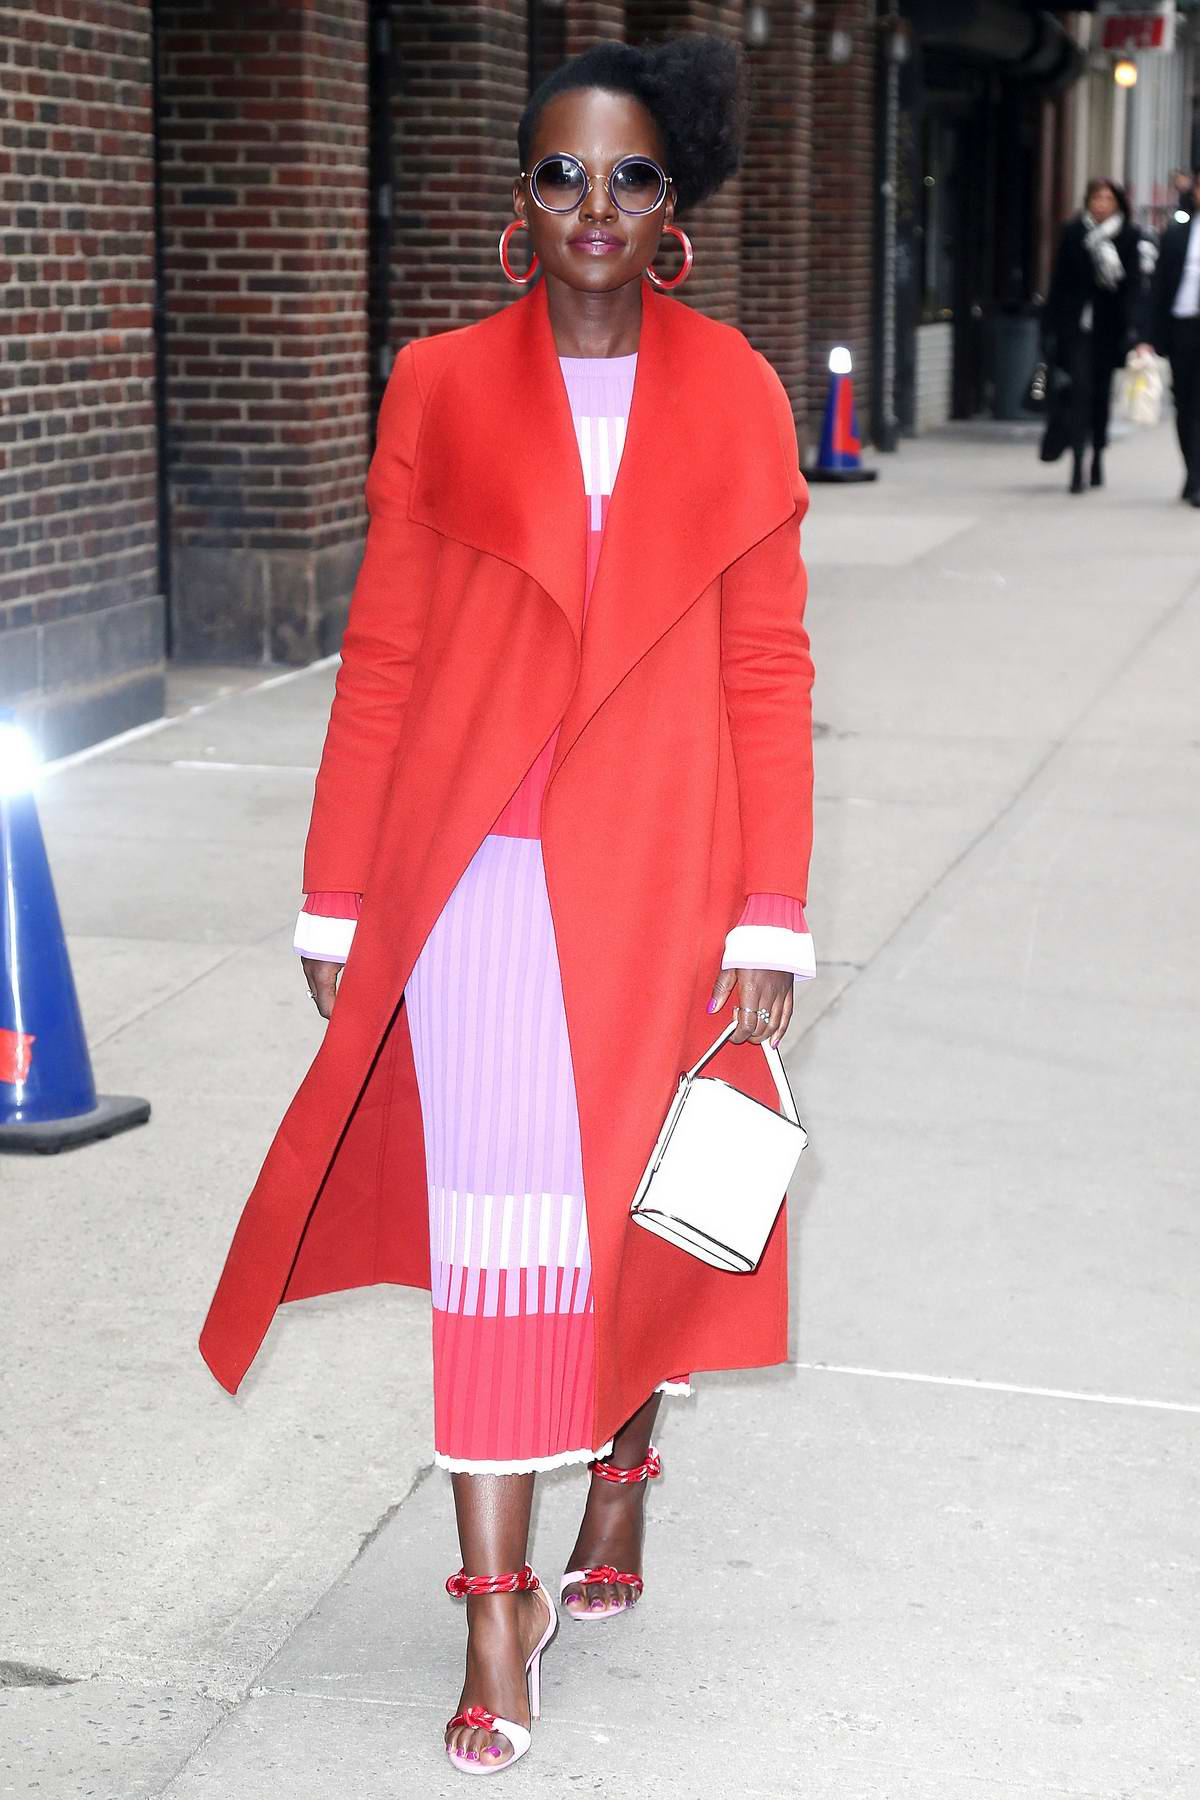 Lupita Nyong'o stands out in a bright red coat while visiting 'The Late Show with Stephen Colbert' in New York City